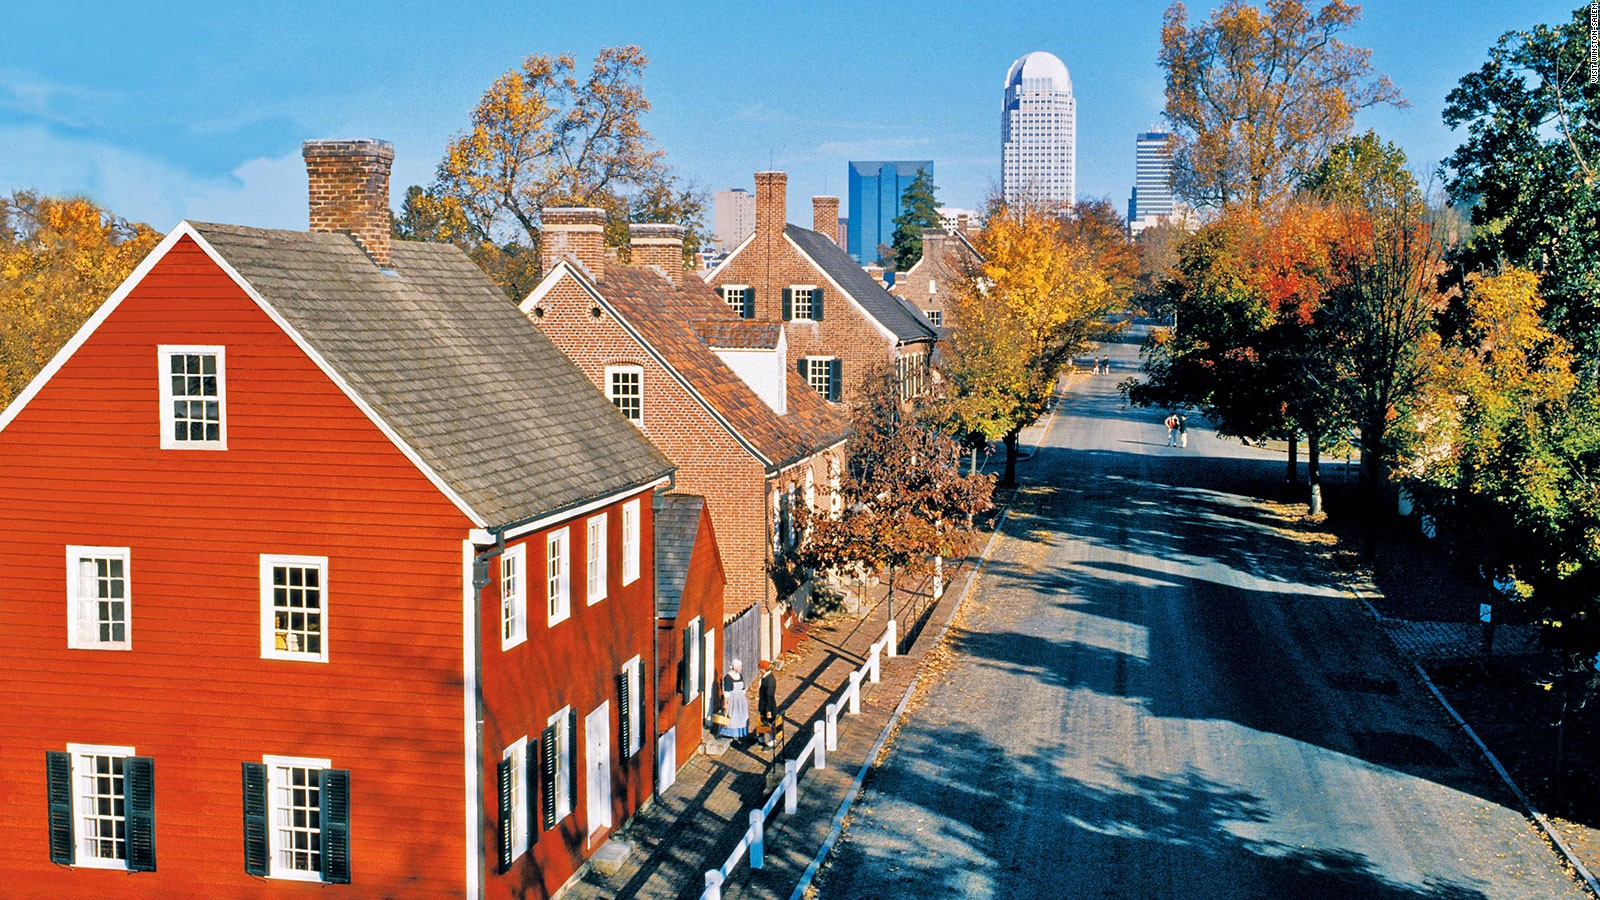 15 charming cities in the American South worth a visit | CNN